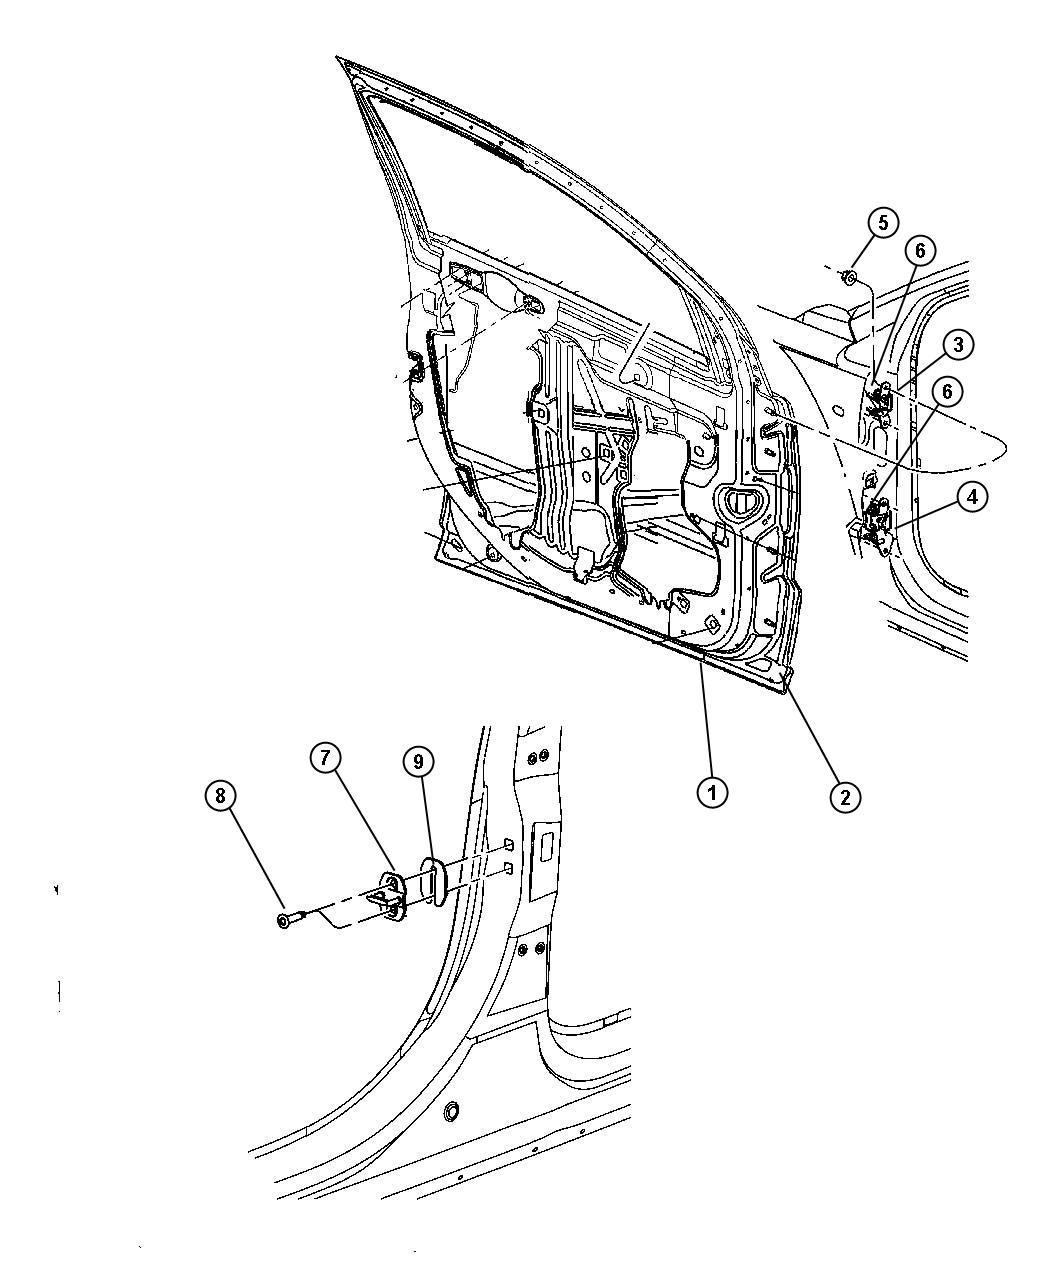 Service manual [2008 Dodge Caliber Sliding Door Bracket